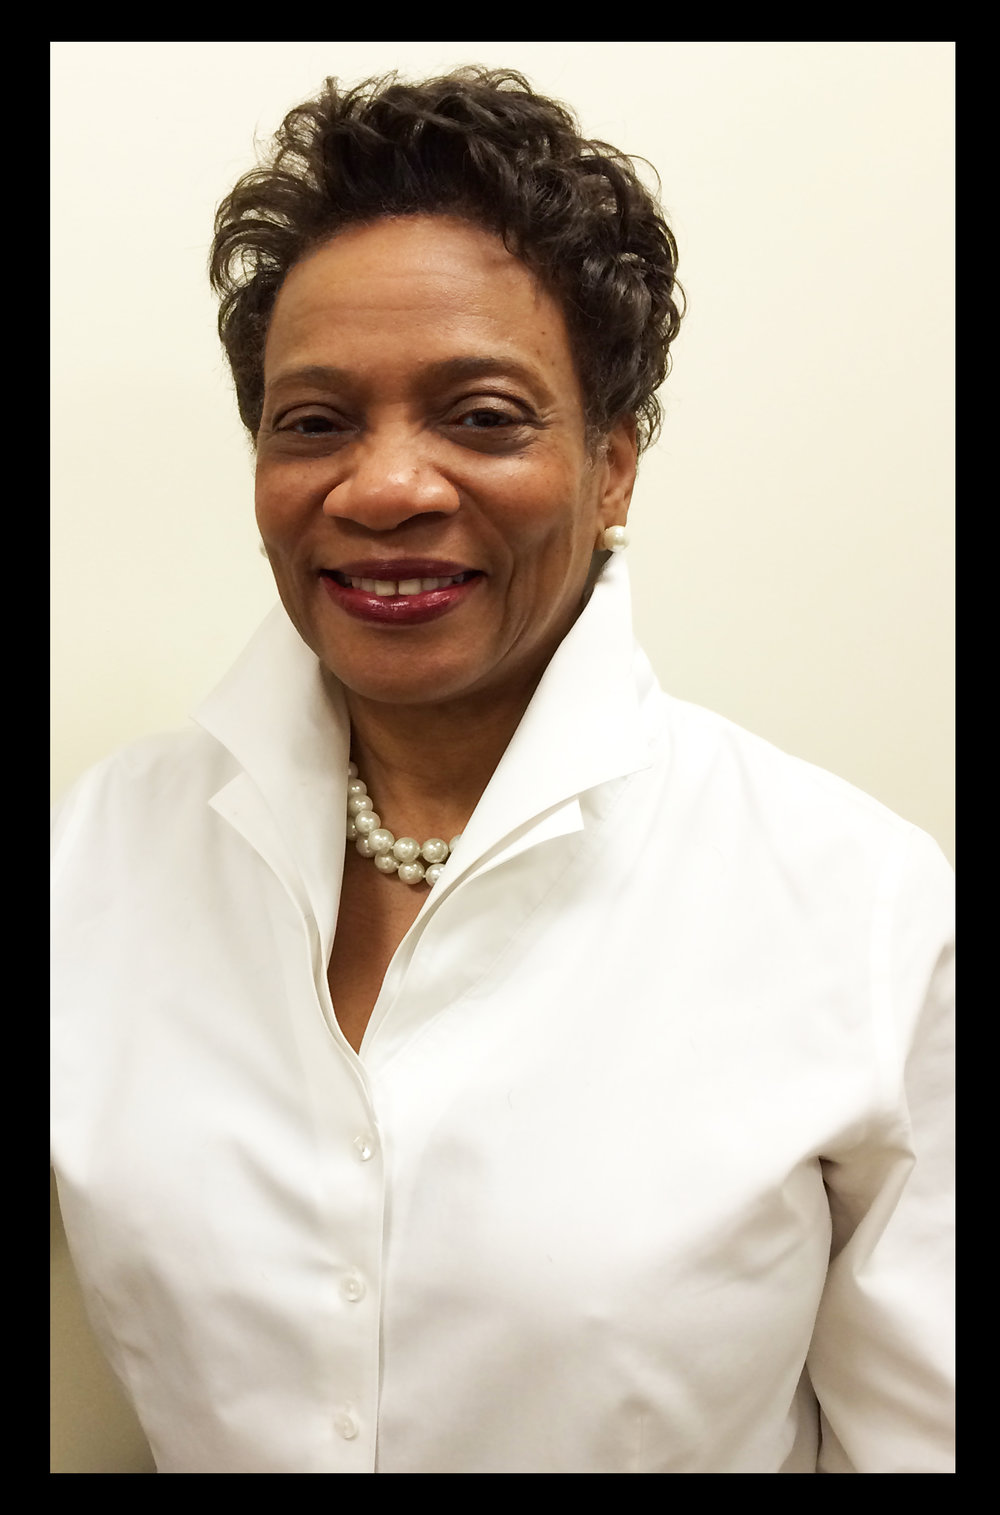 Cathy S. Gilliard, D.Min Cathy is Senior Minister at Park Avenue United Methodist Church in New York. Her extensive professional expertise includes community building, advocacy for vulnerable women, and leading mission based organizations. She has degrees from North Carolina A&T State University,Rutgers State University,Duke Divinity School, and United Theological Seminary.